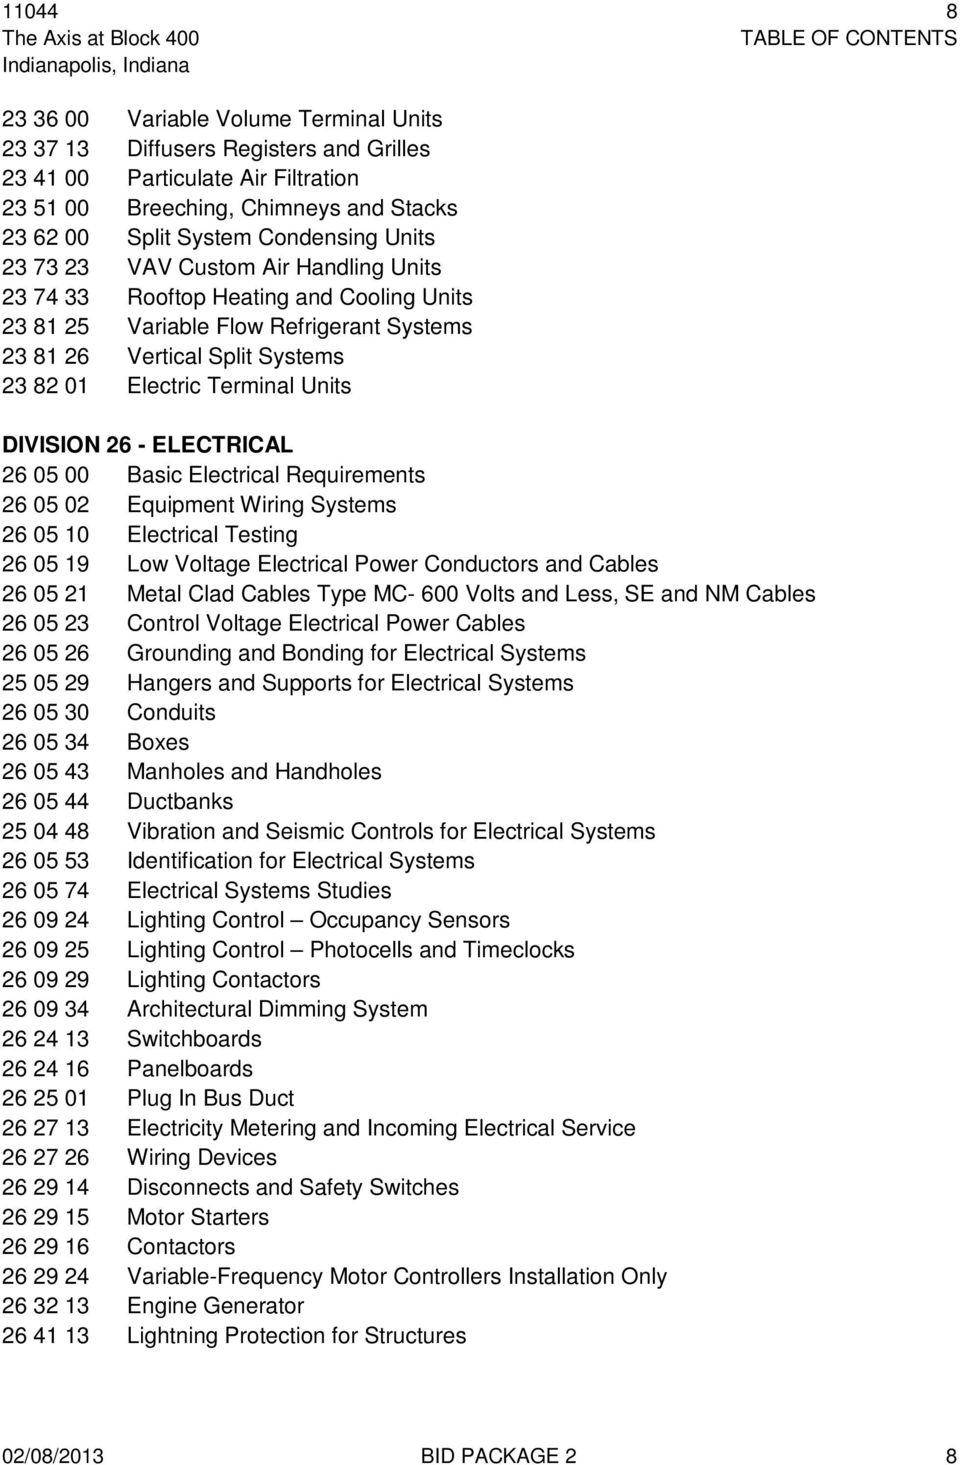 DIVISION 26 - ELECTRICAL 26 05 00 Basic Electrical Requirements 26 05 02 Equipment Wiring Systems 26 05 10 Electrical Testing 26 05 19 Low Voltage Electrical Power Conductors and Cables 26 05 21